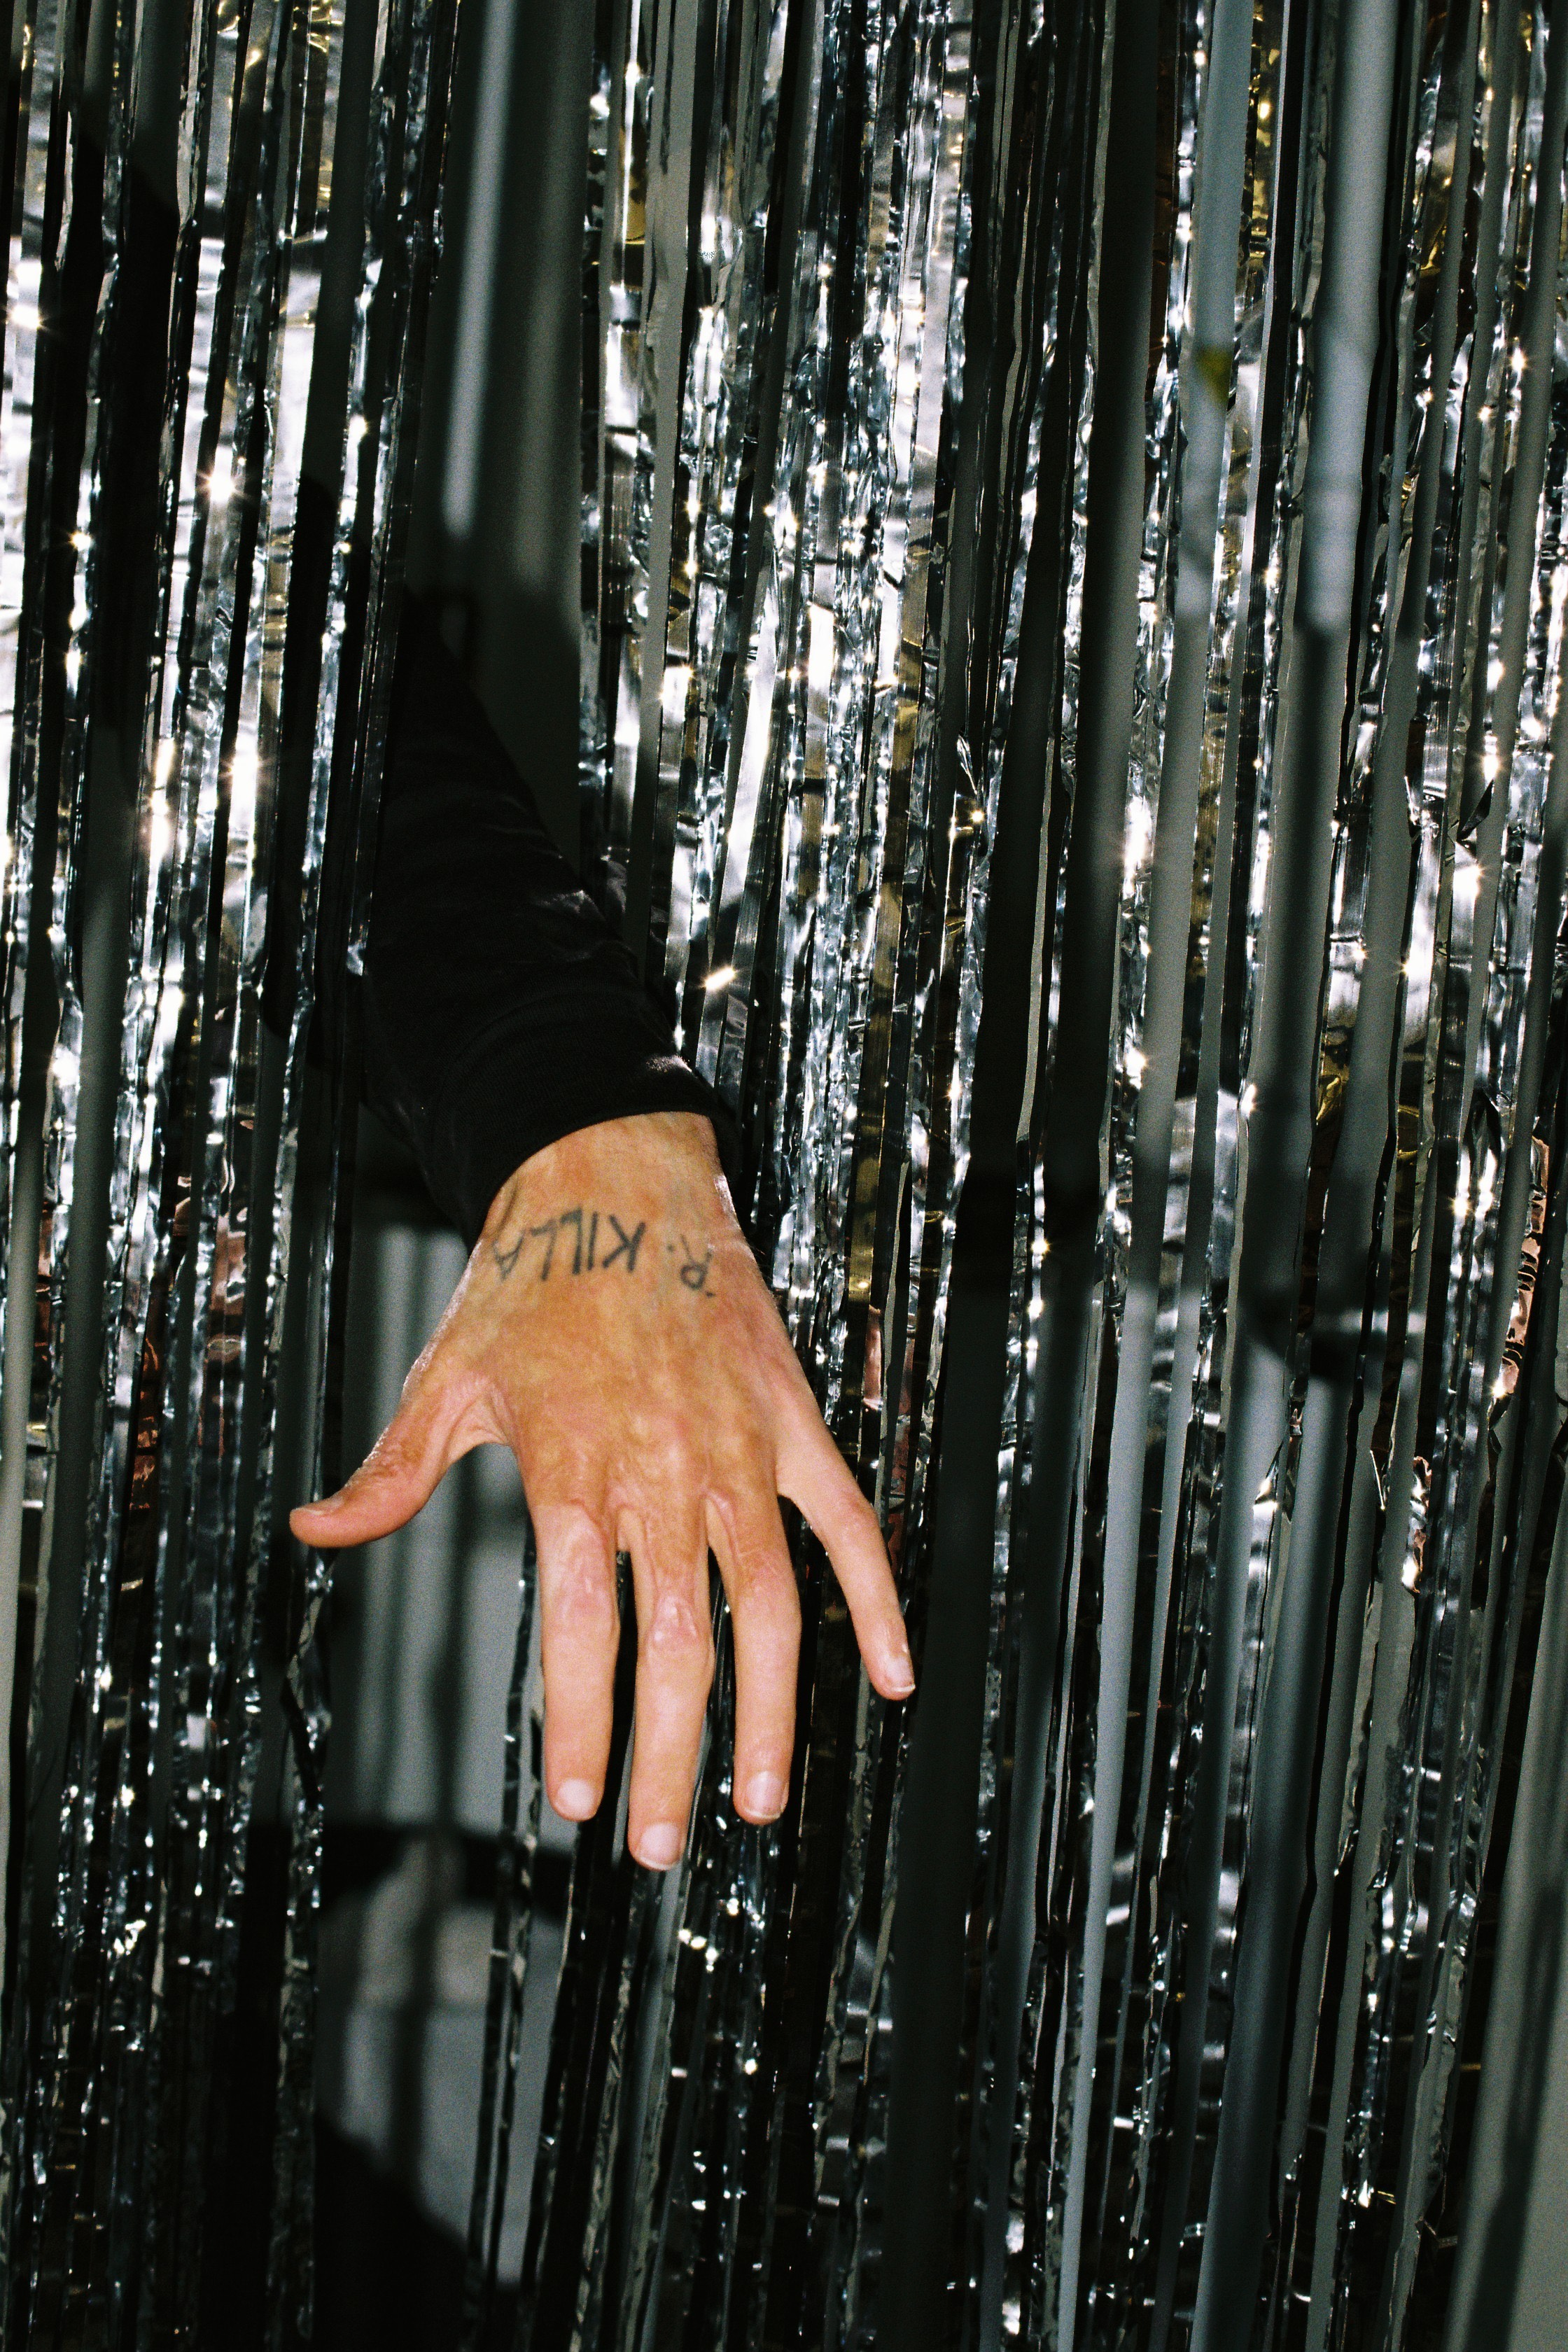 a man's hand with burn marks and an 'R. KILLA' tattoo appearing from silver streamers